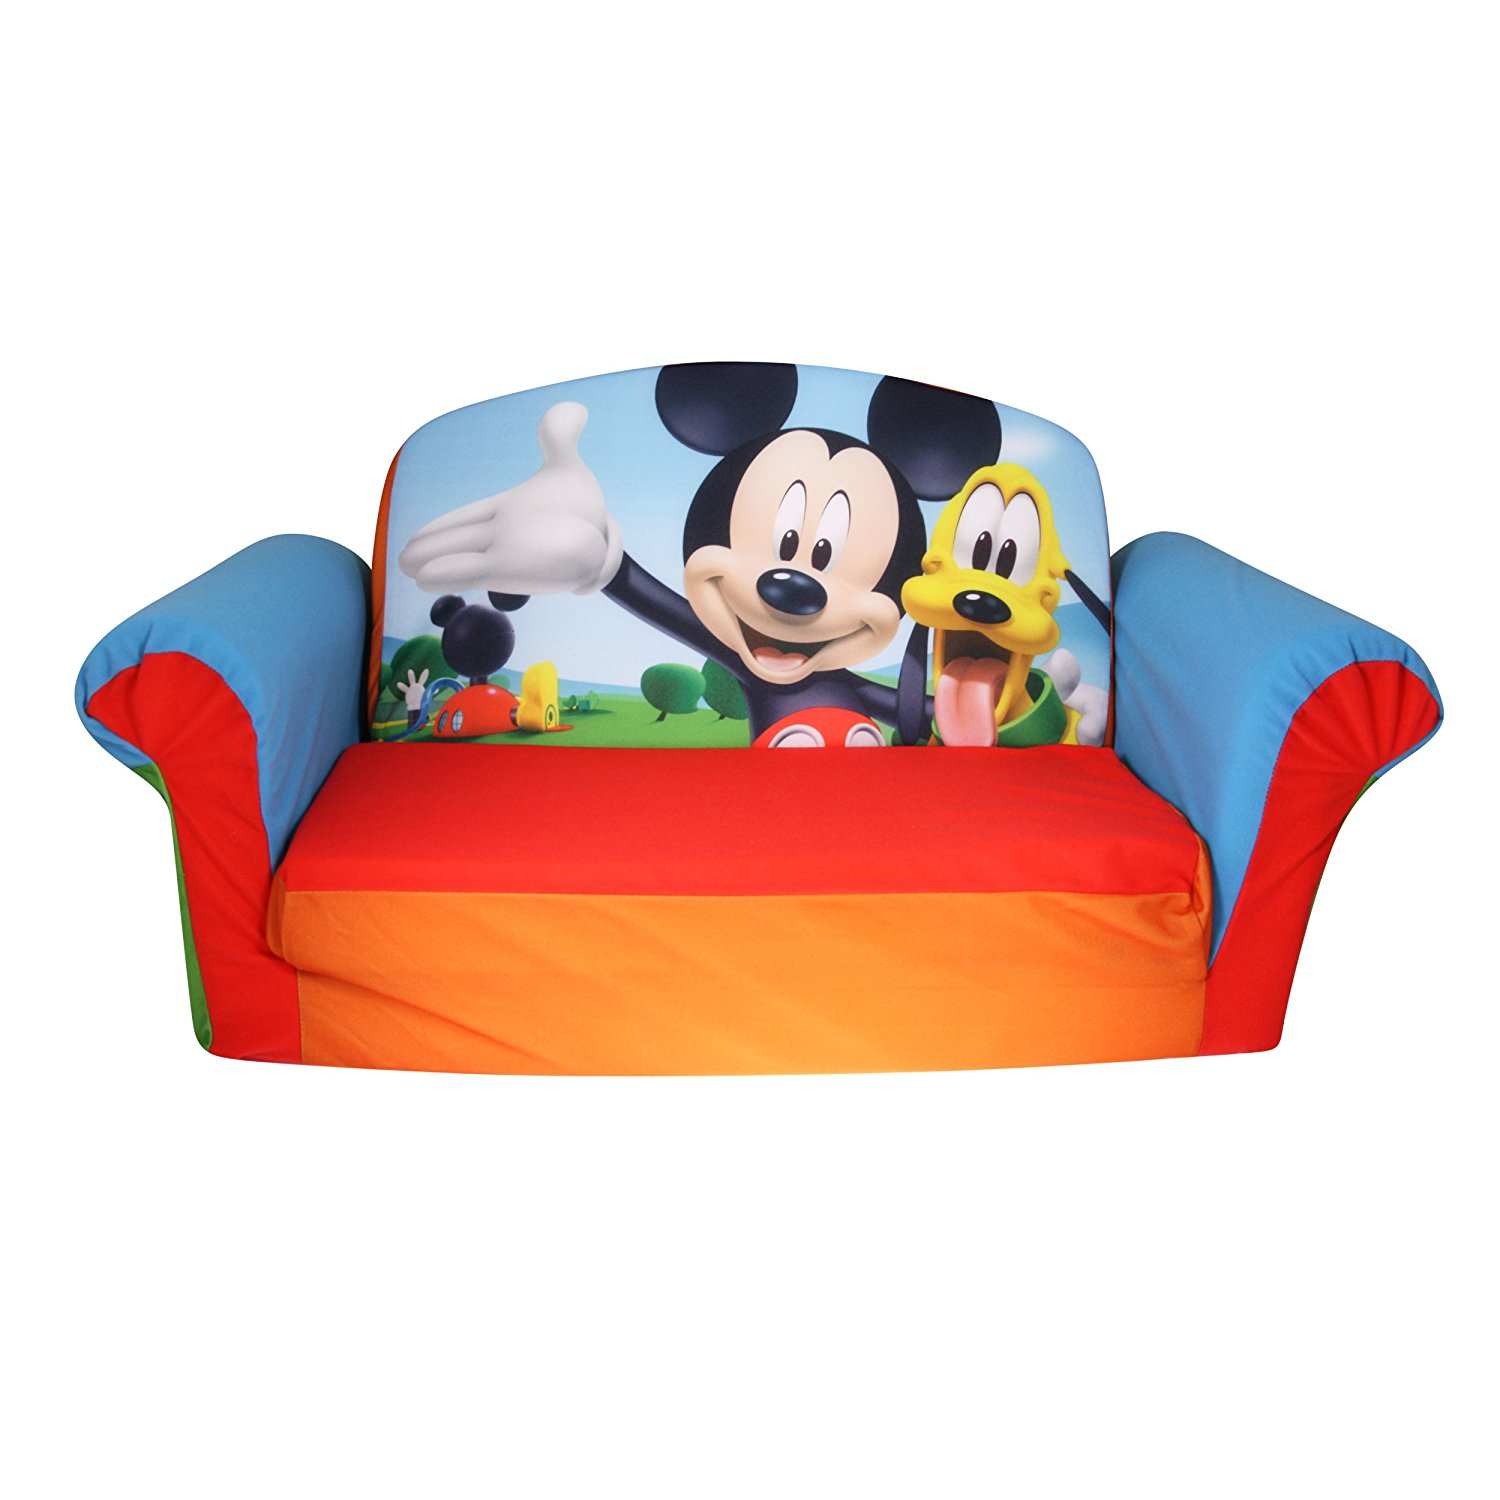 Marshmallow Furniture   Flip Open Sofa   Mickey Mouse Club House    Walmart.com